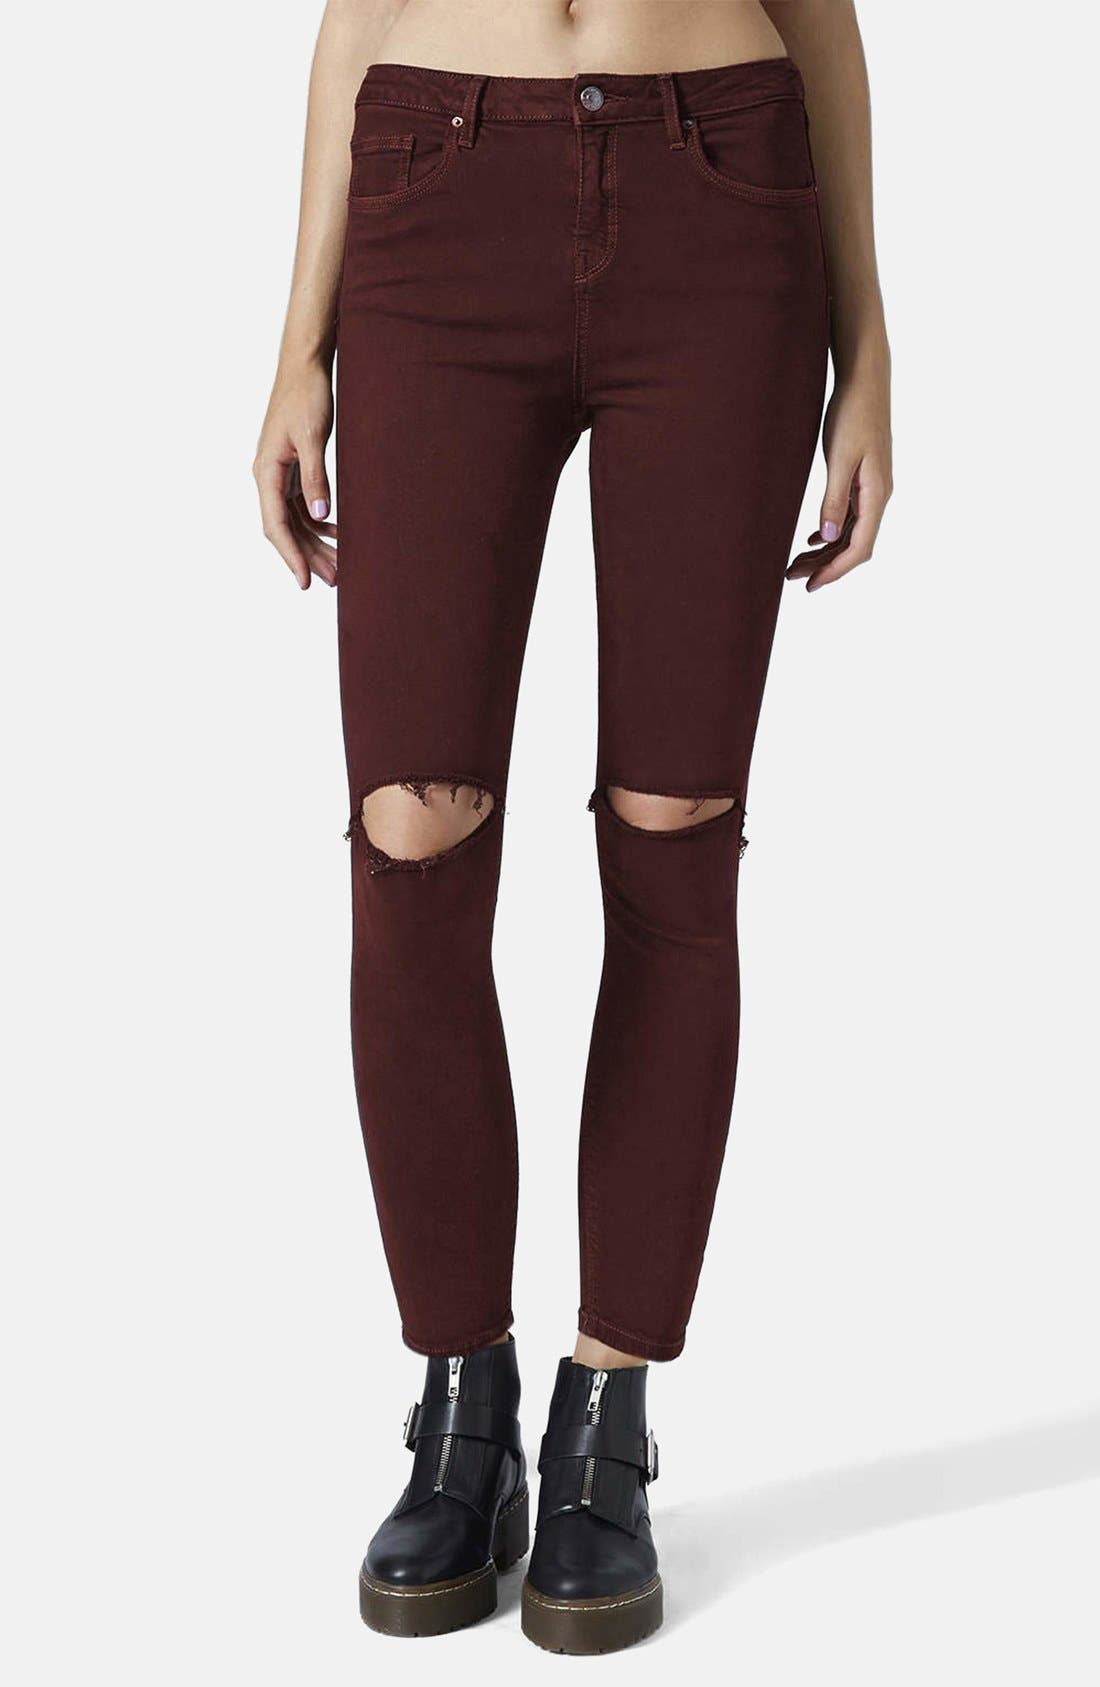 Alternate Image 1 Selected - Topshop Moto 'Jamie' Ripped Jeans (Aubergine)